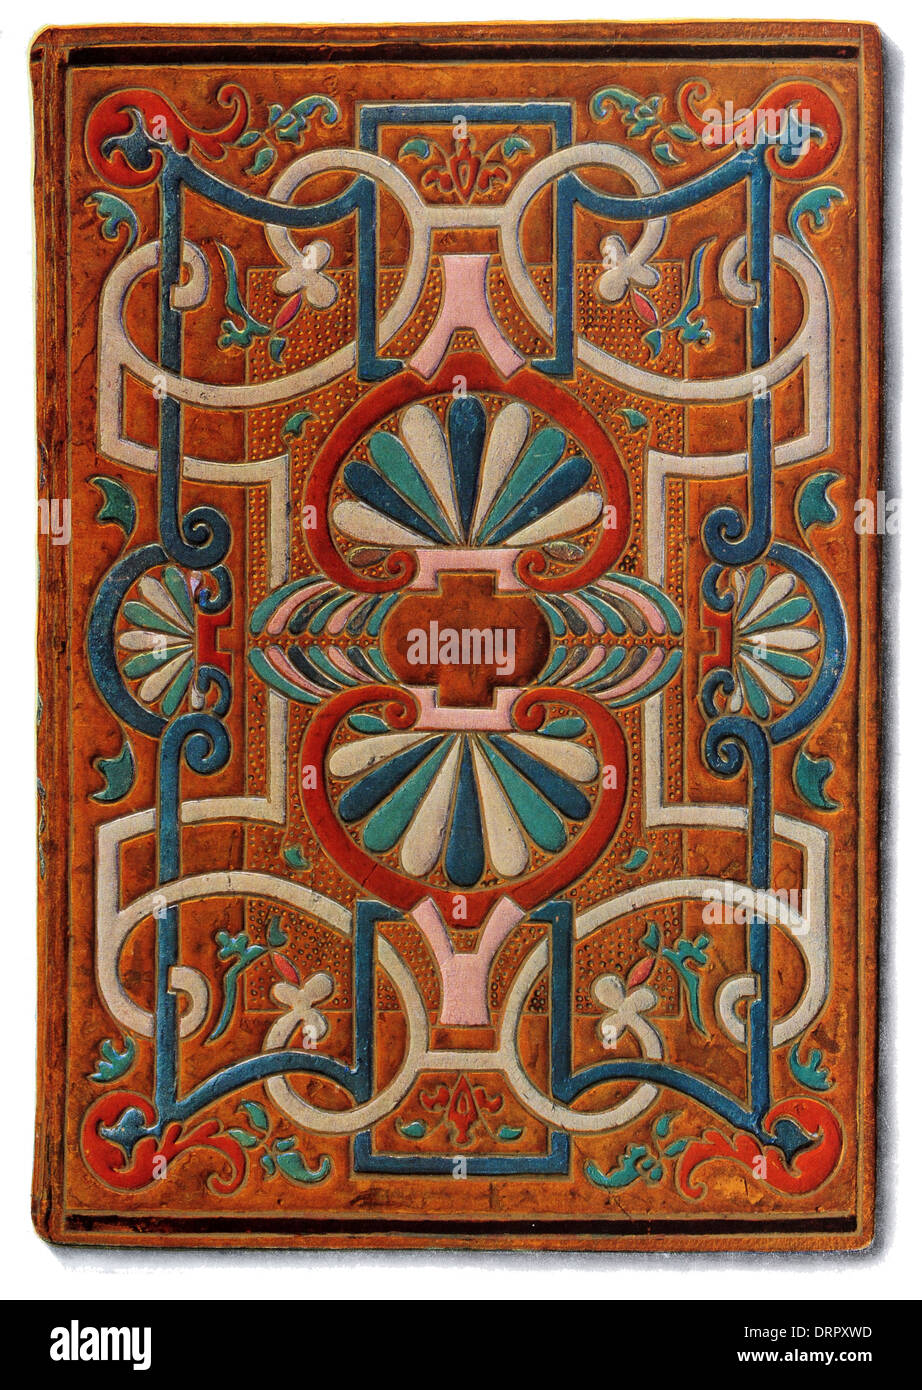 mosaic book cover  1549 - Stock Image